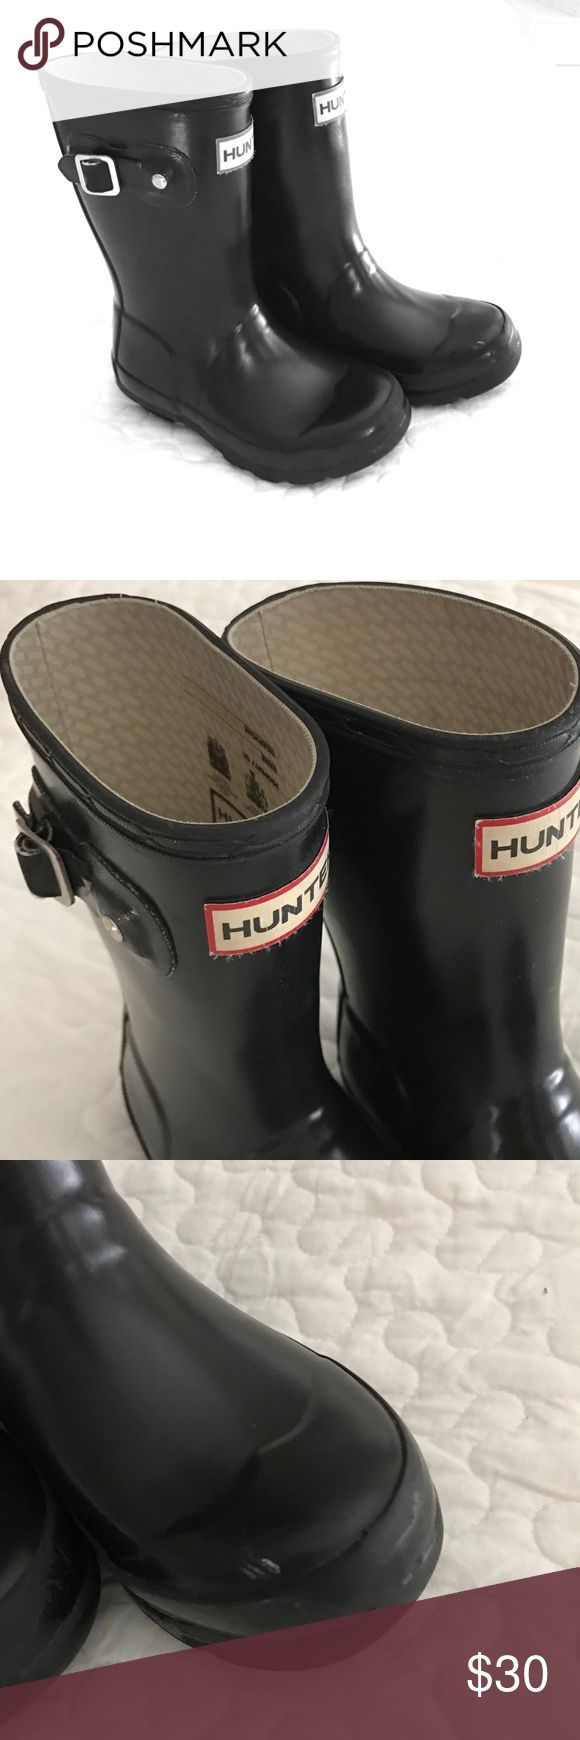 Girls hunter boots Adorable black hunter boots! Tiny scuff on toe. But otherwise in great condition! 10 boy/11 girl Hunter Boots Shoes Rain & Snow Boots